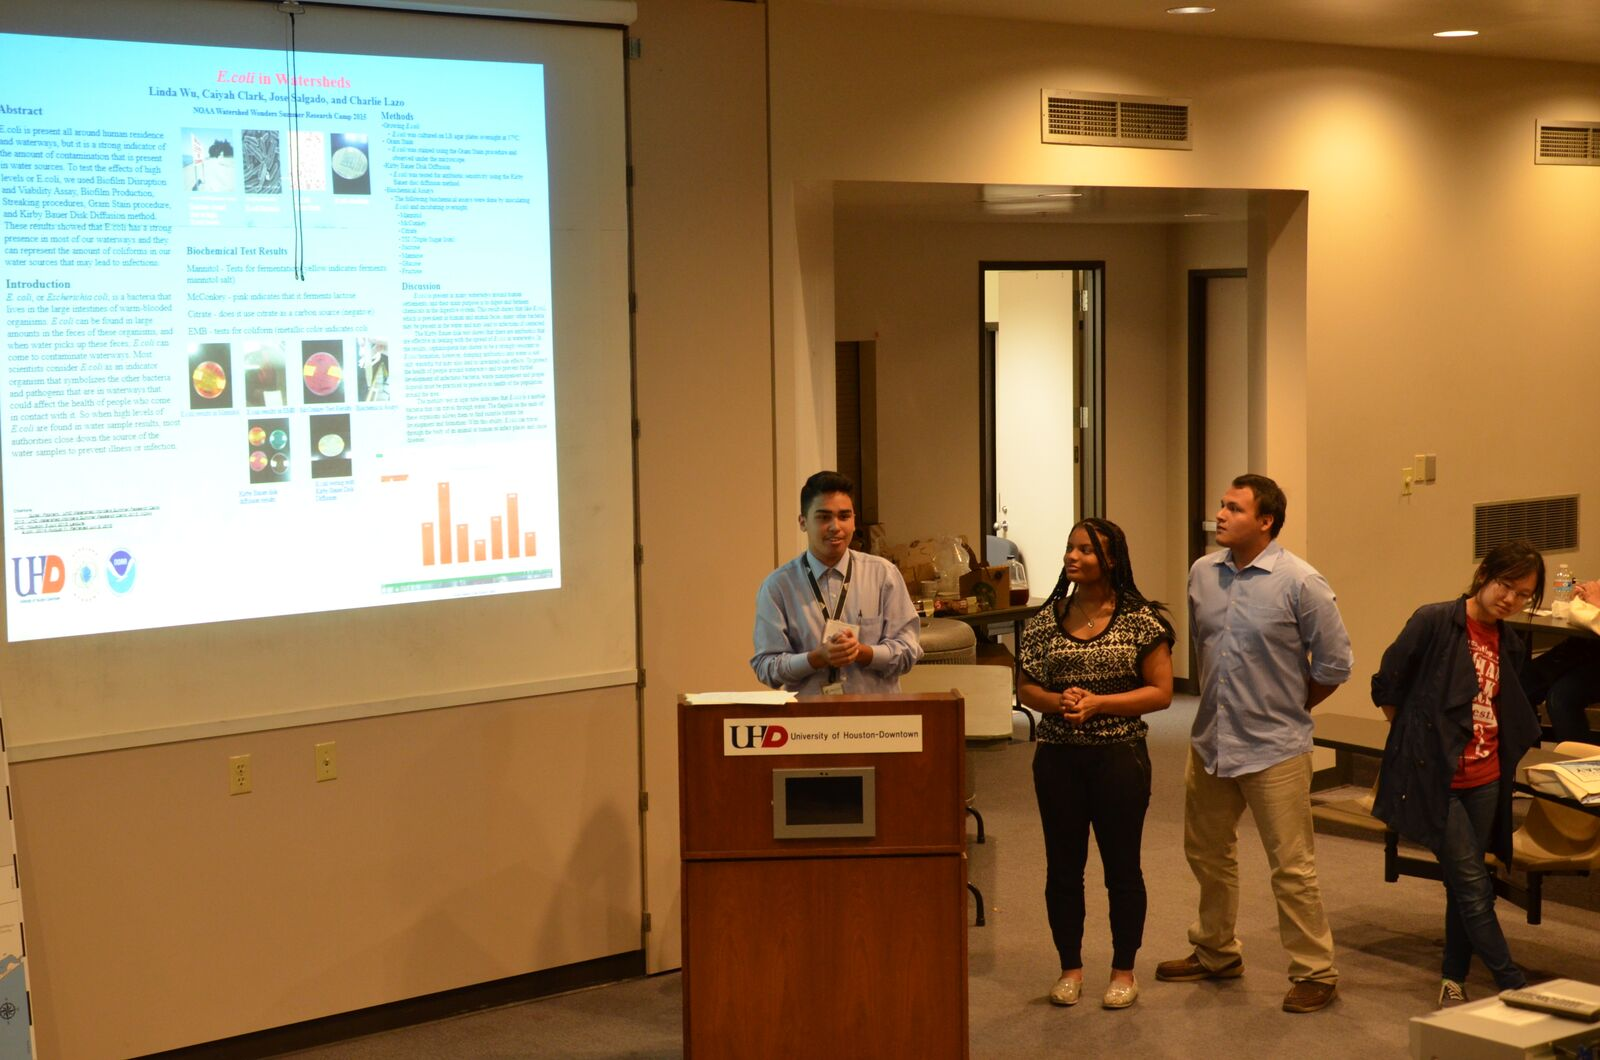 Presentation of Student Research